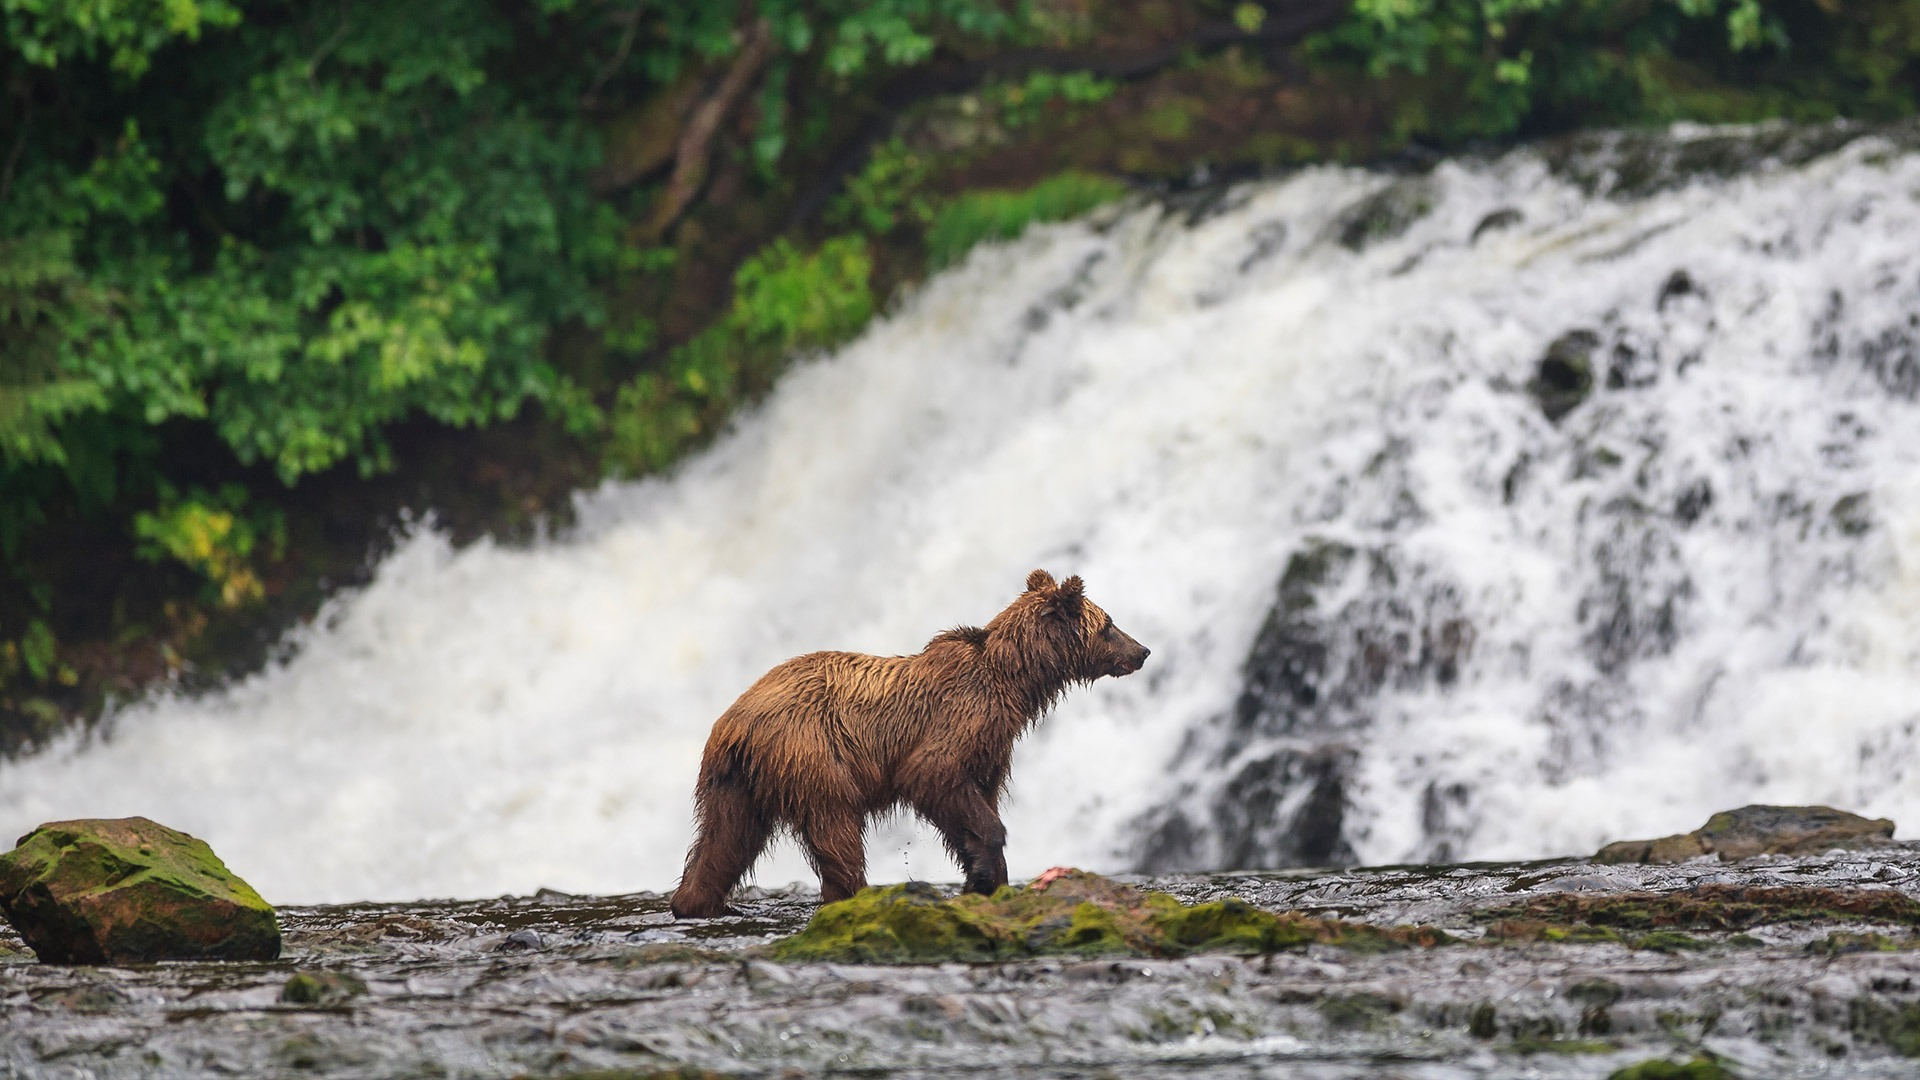 A brown bear looks for salmon on Chichagof Island, Tongass National Forest, Alaska